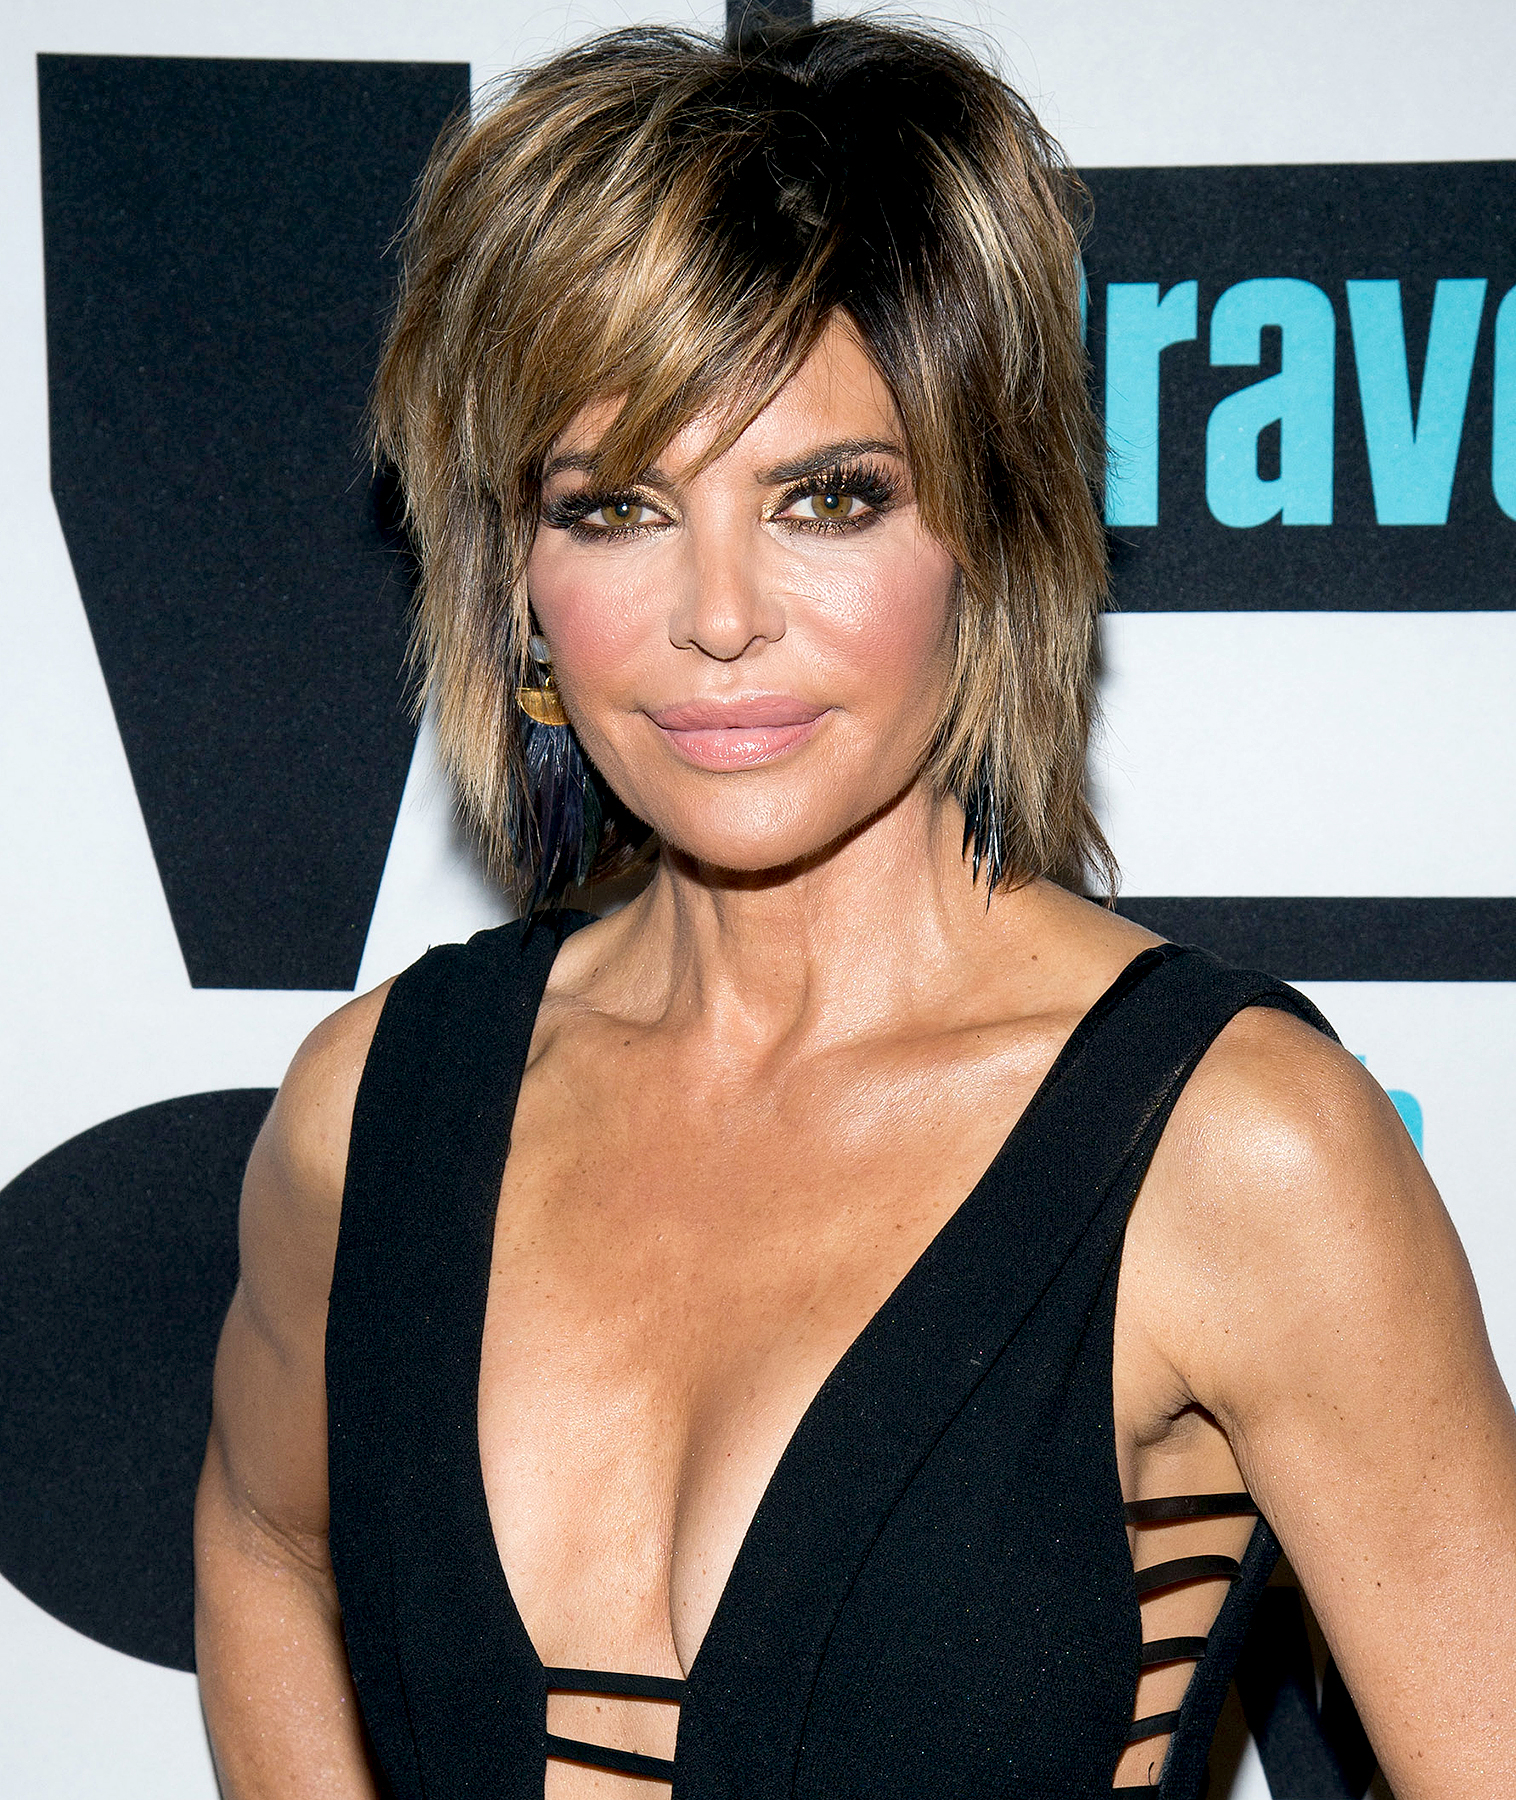 Images Lisa Rinna nude photos 2019